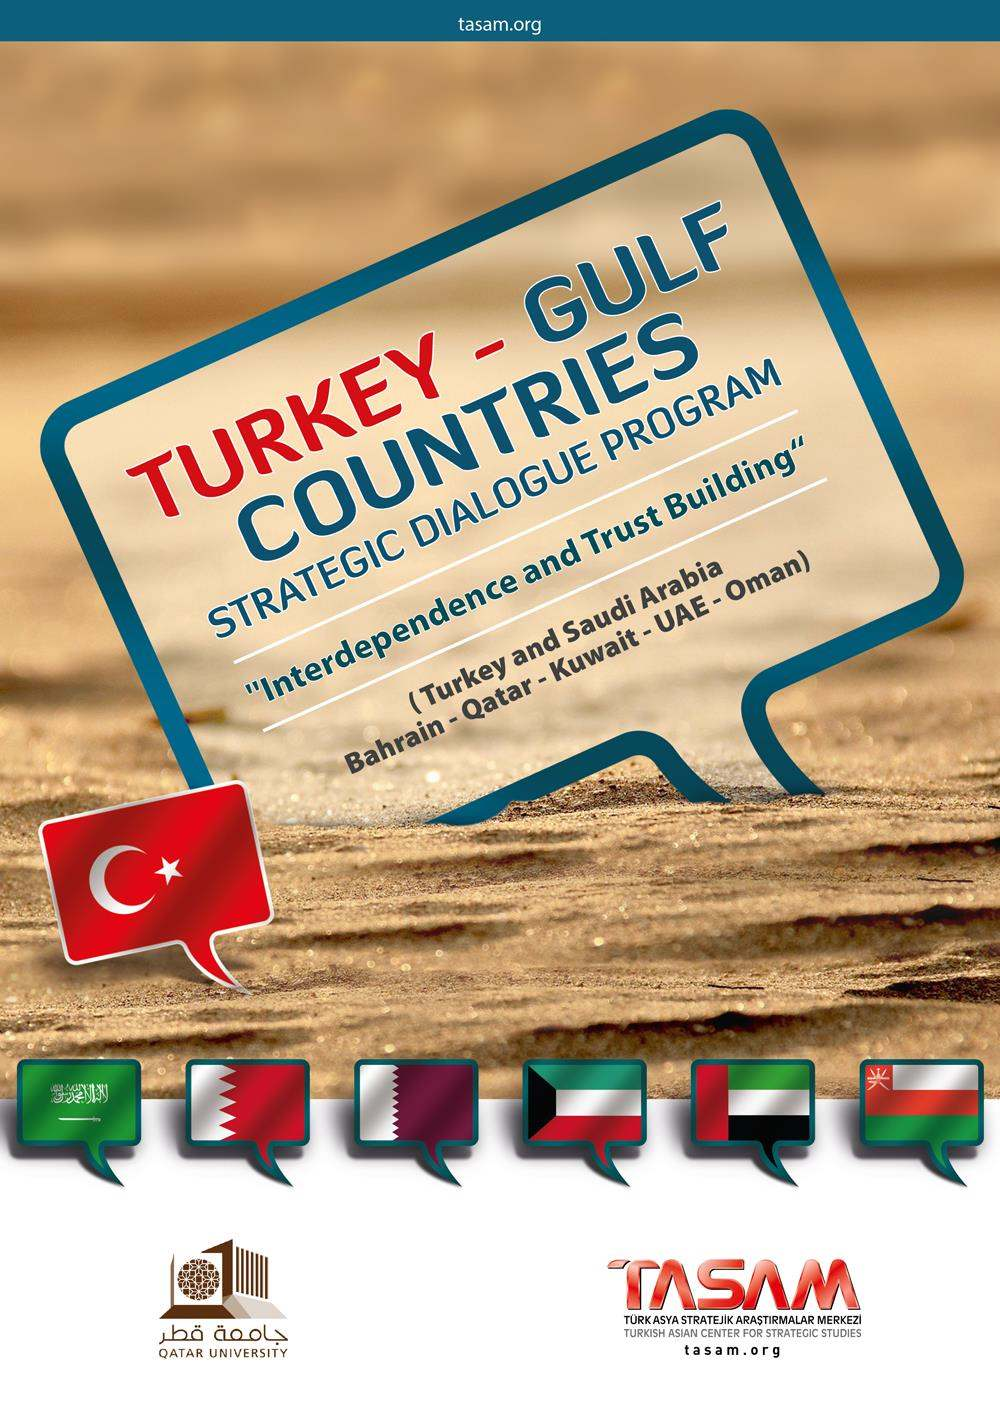 Turkey - Gulf Countries Strategic Dialogue Program